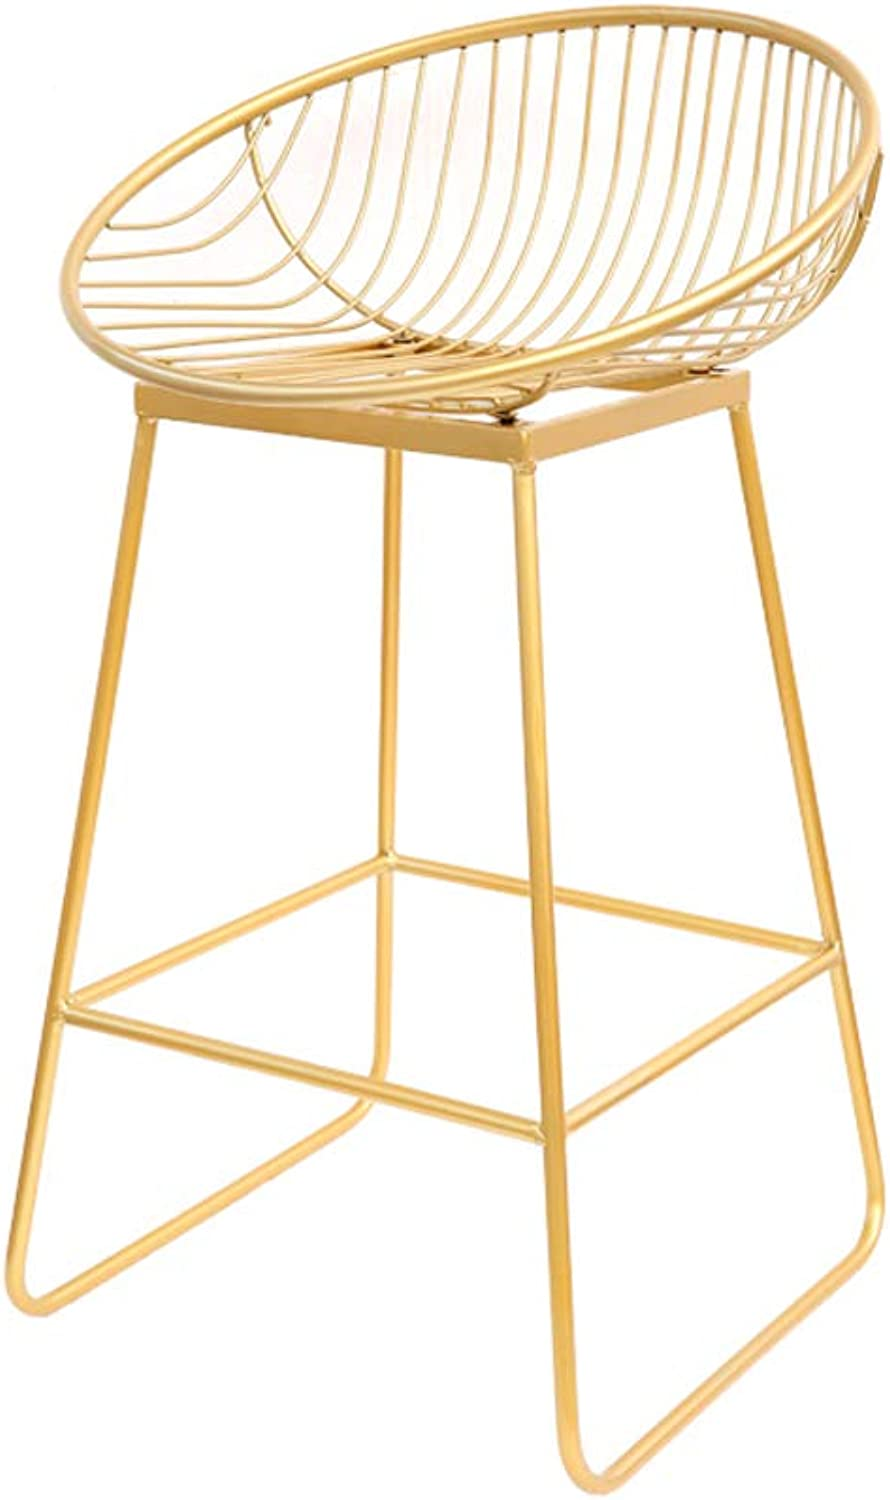 WLJBD golden Wrought Iron Bar Stool Set of 2, Modern Minimalist Leisure Bar Stool High Stool Hollow Design Metal Chair Containing Cushion (H42cm, H62cm) (color   H62cm, Size   1 Pieces)